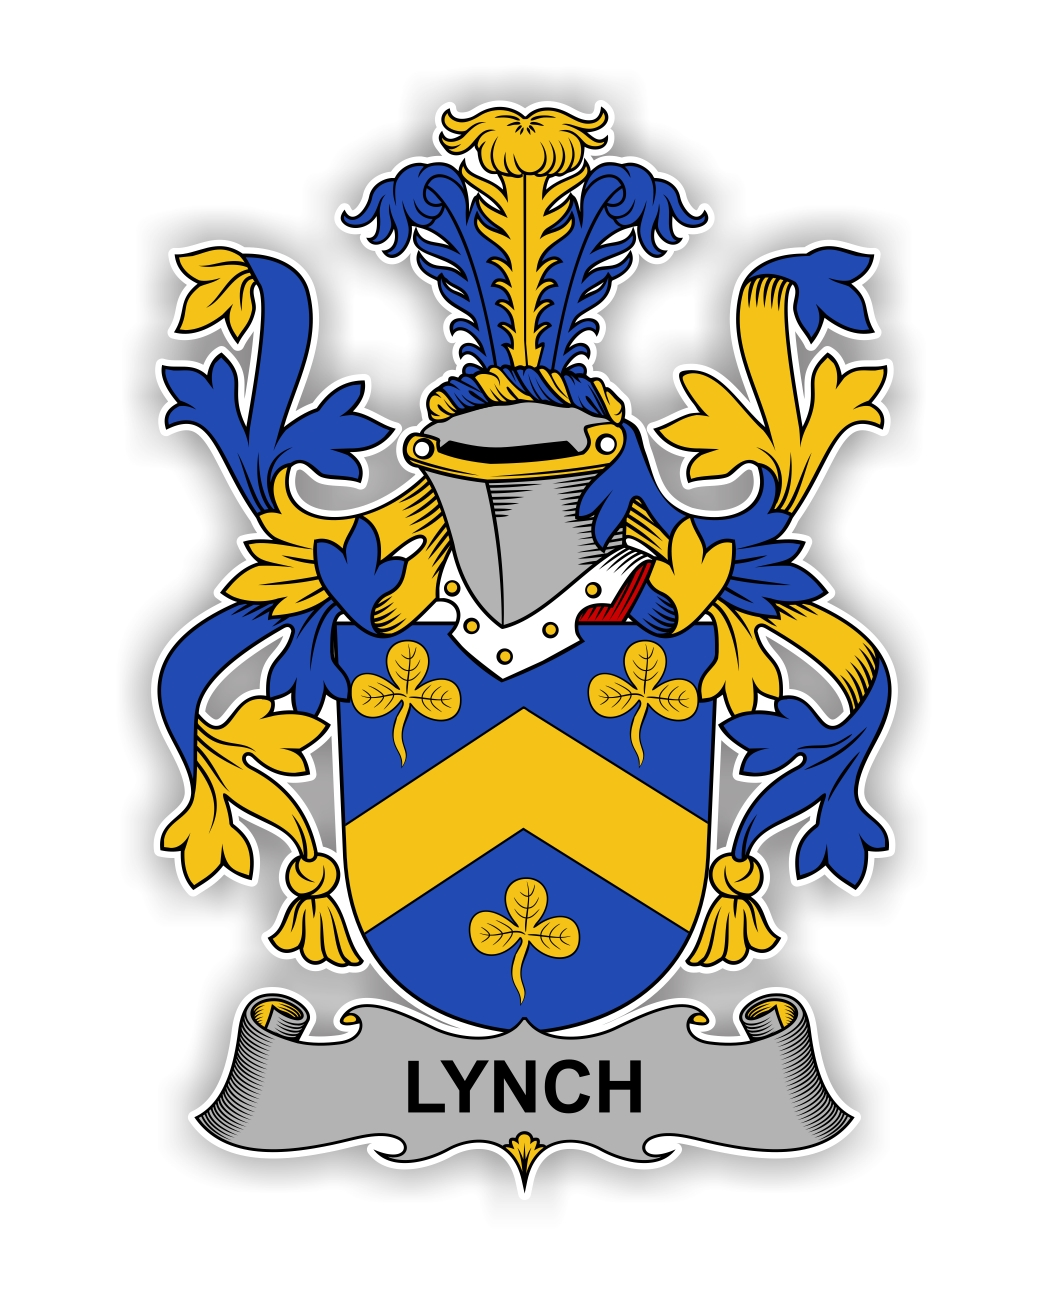 Lynch Family Crest Vinyl Die-Cut Decal / Sticker ** 4 Sizes